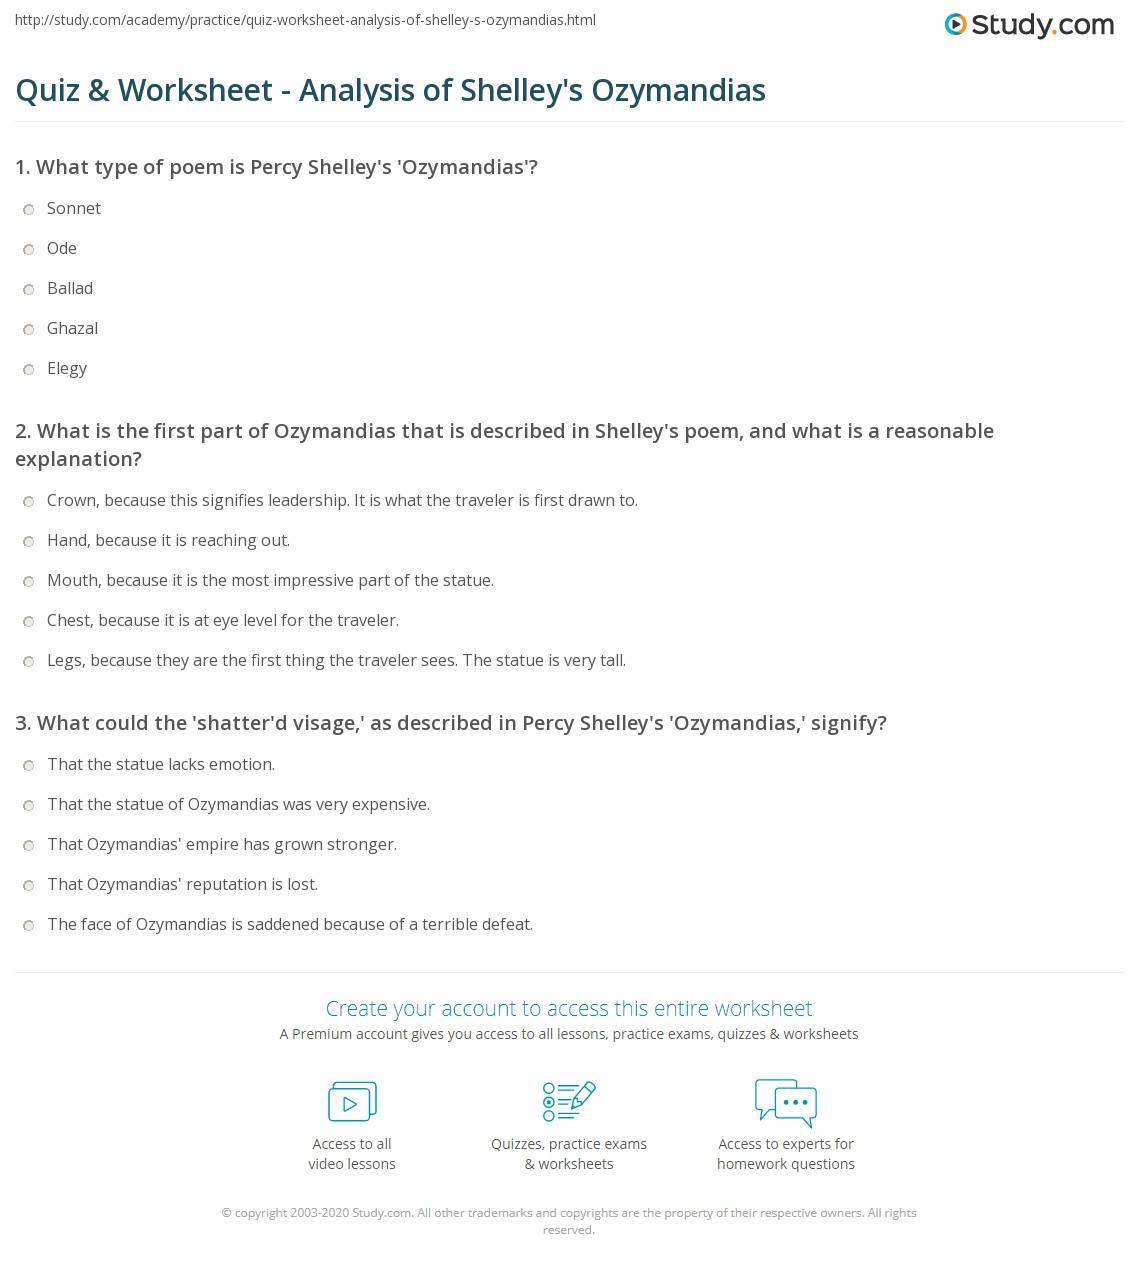 quiz worksheet analysis of shelley s ozymandias com print percy shelley s ozymandias analysis and themes worksheet